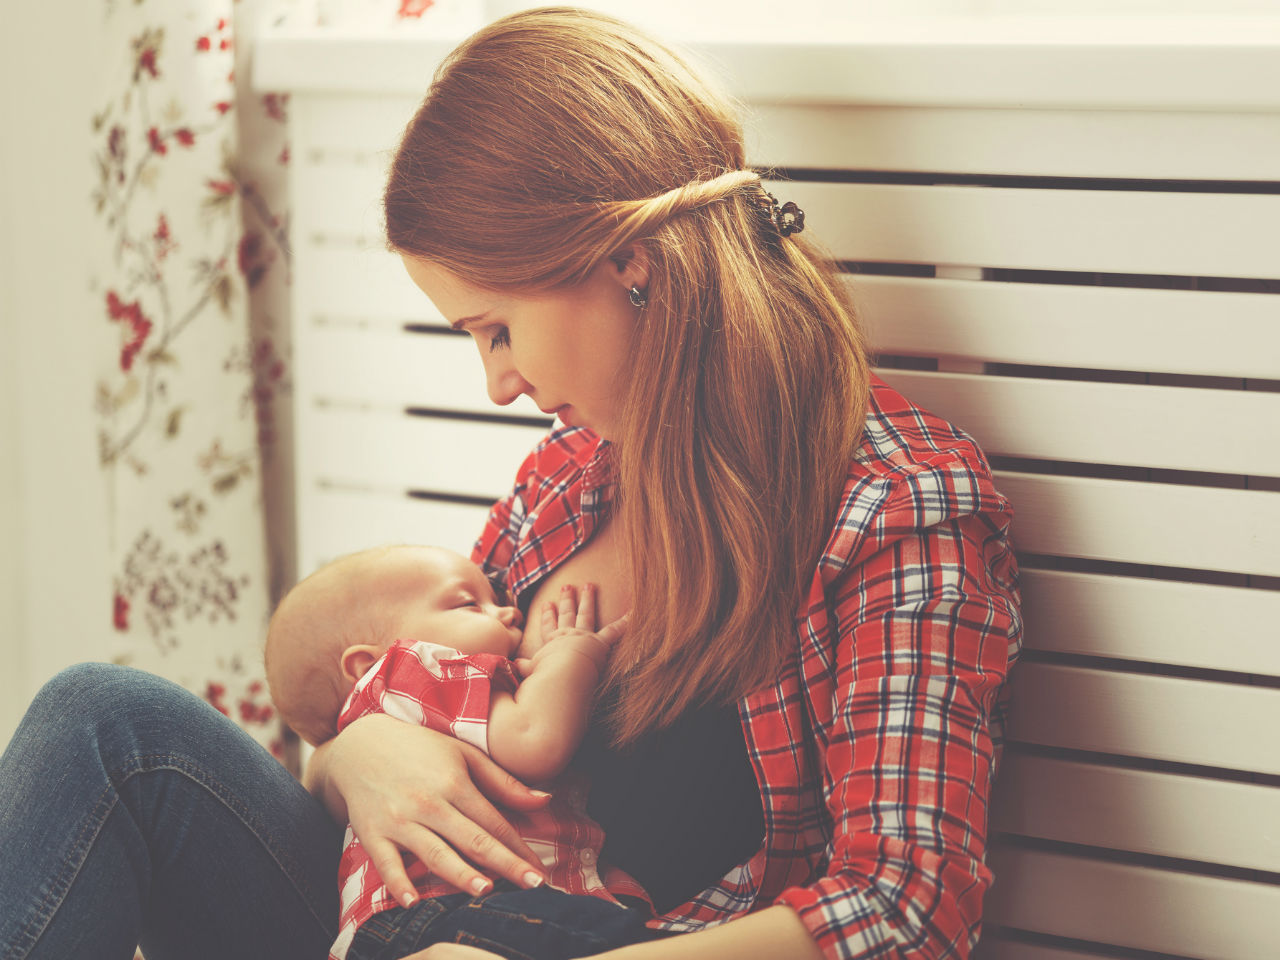 Young mom breastfeeding her baby at home